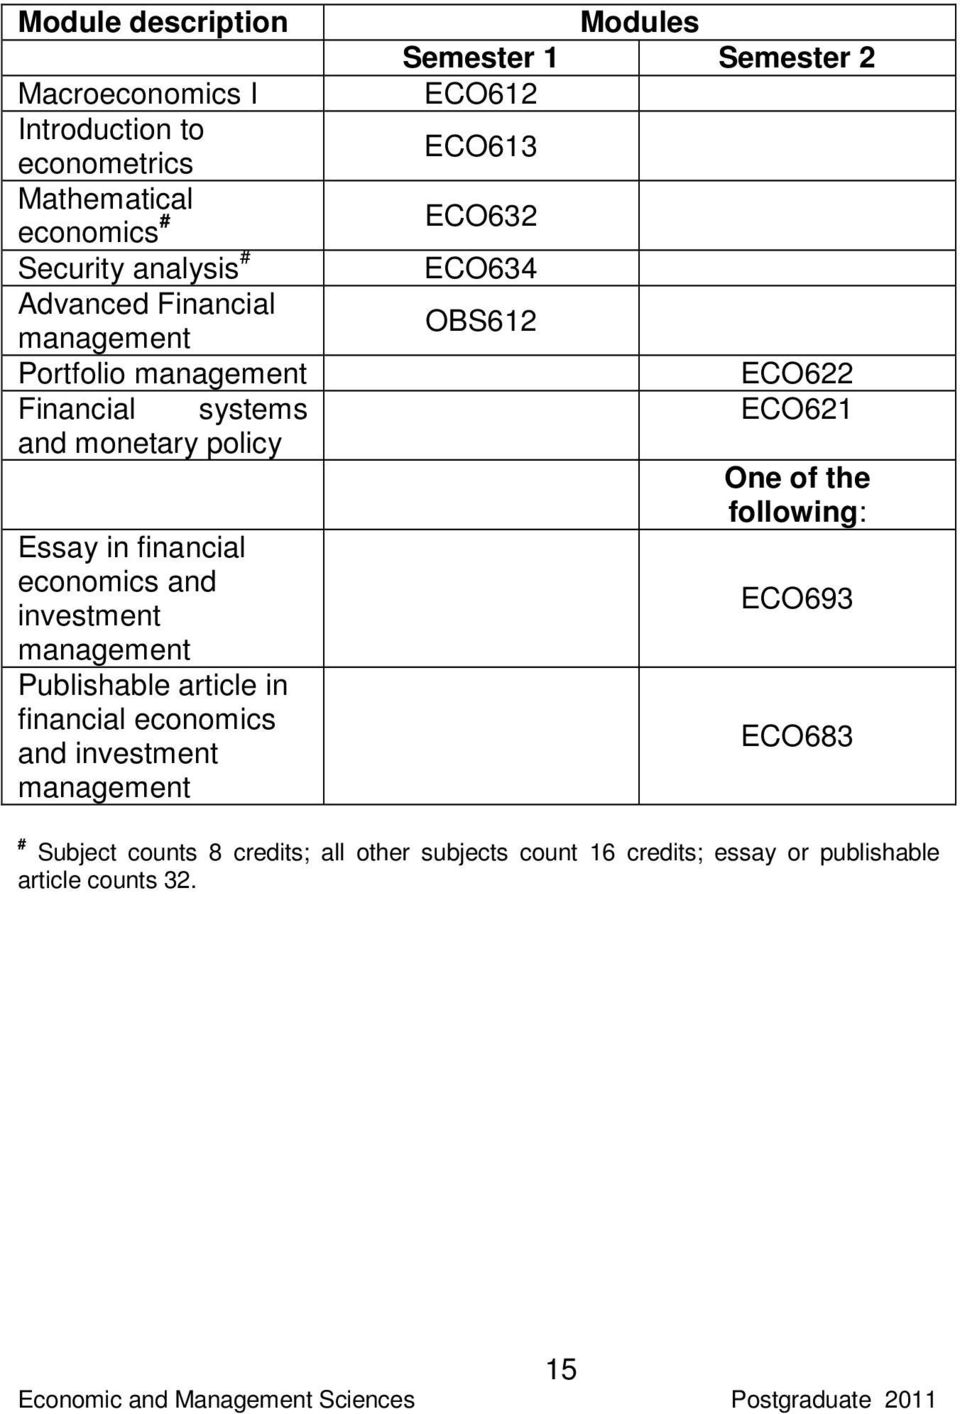 article in financial economics and investment management Modules Semester 1 Semester 2 ECO612 ECO613 ECO632 ECO634 OBS612 ECO622 ECO621